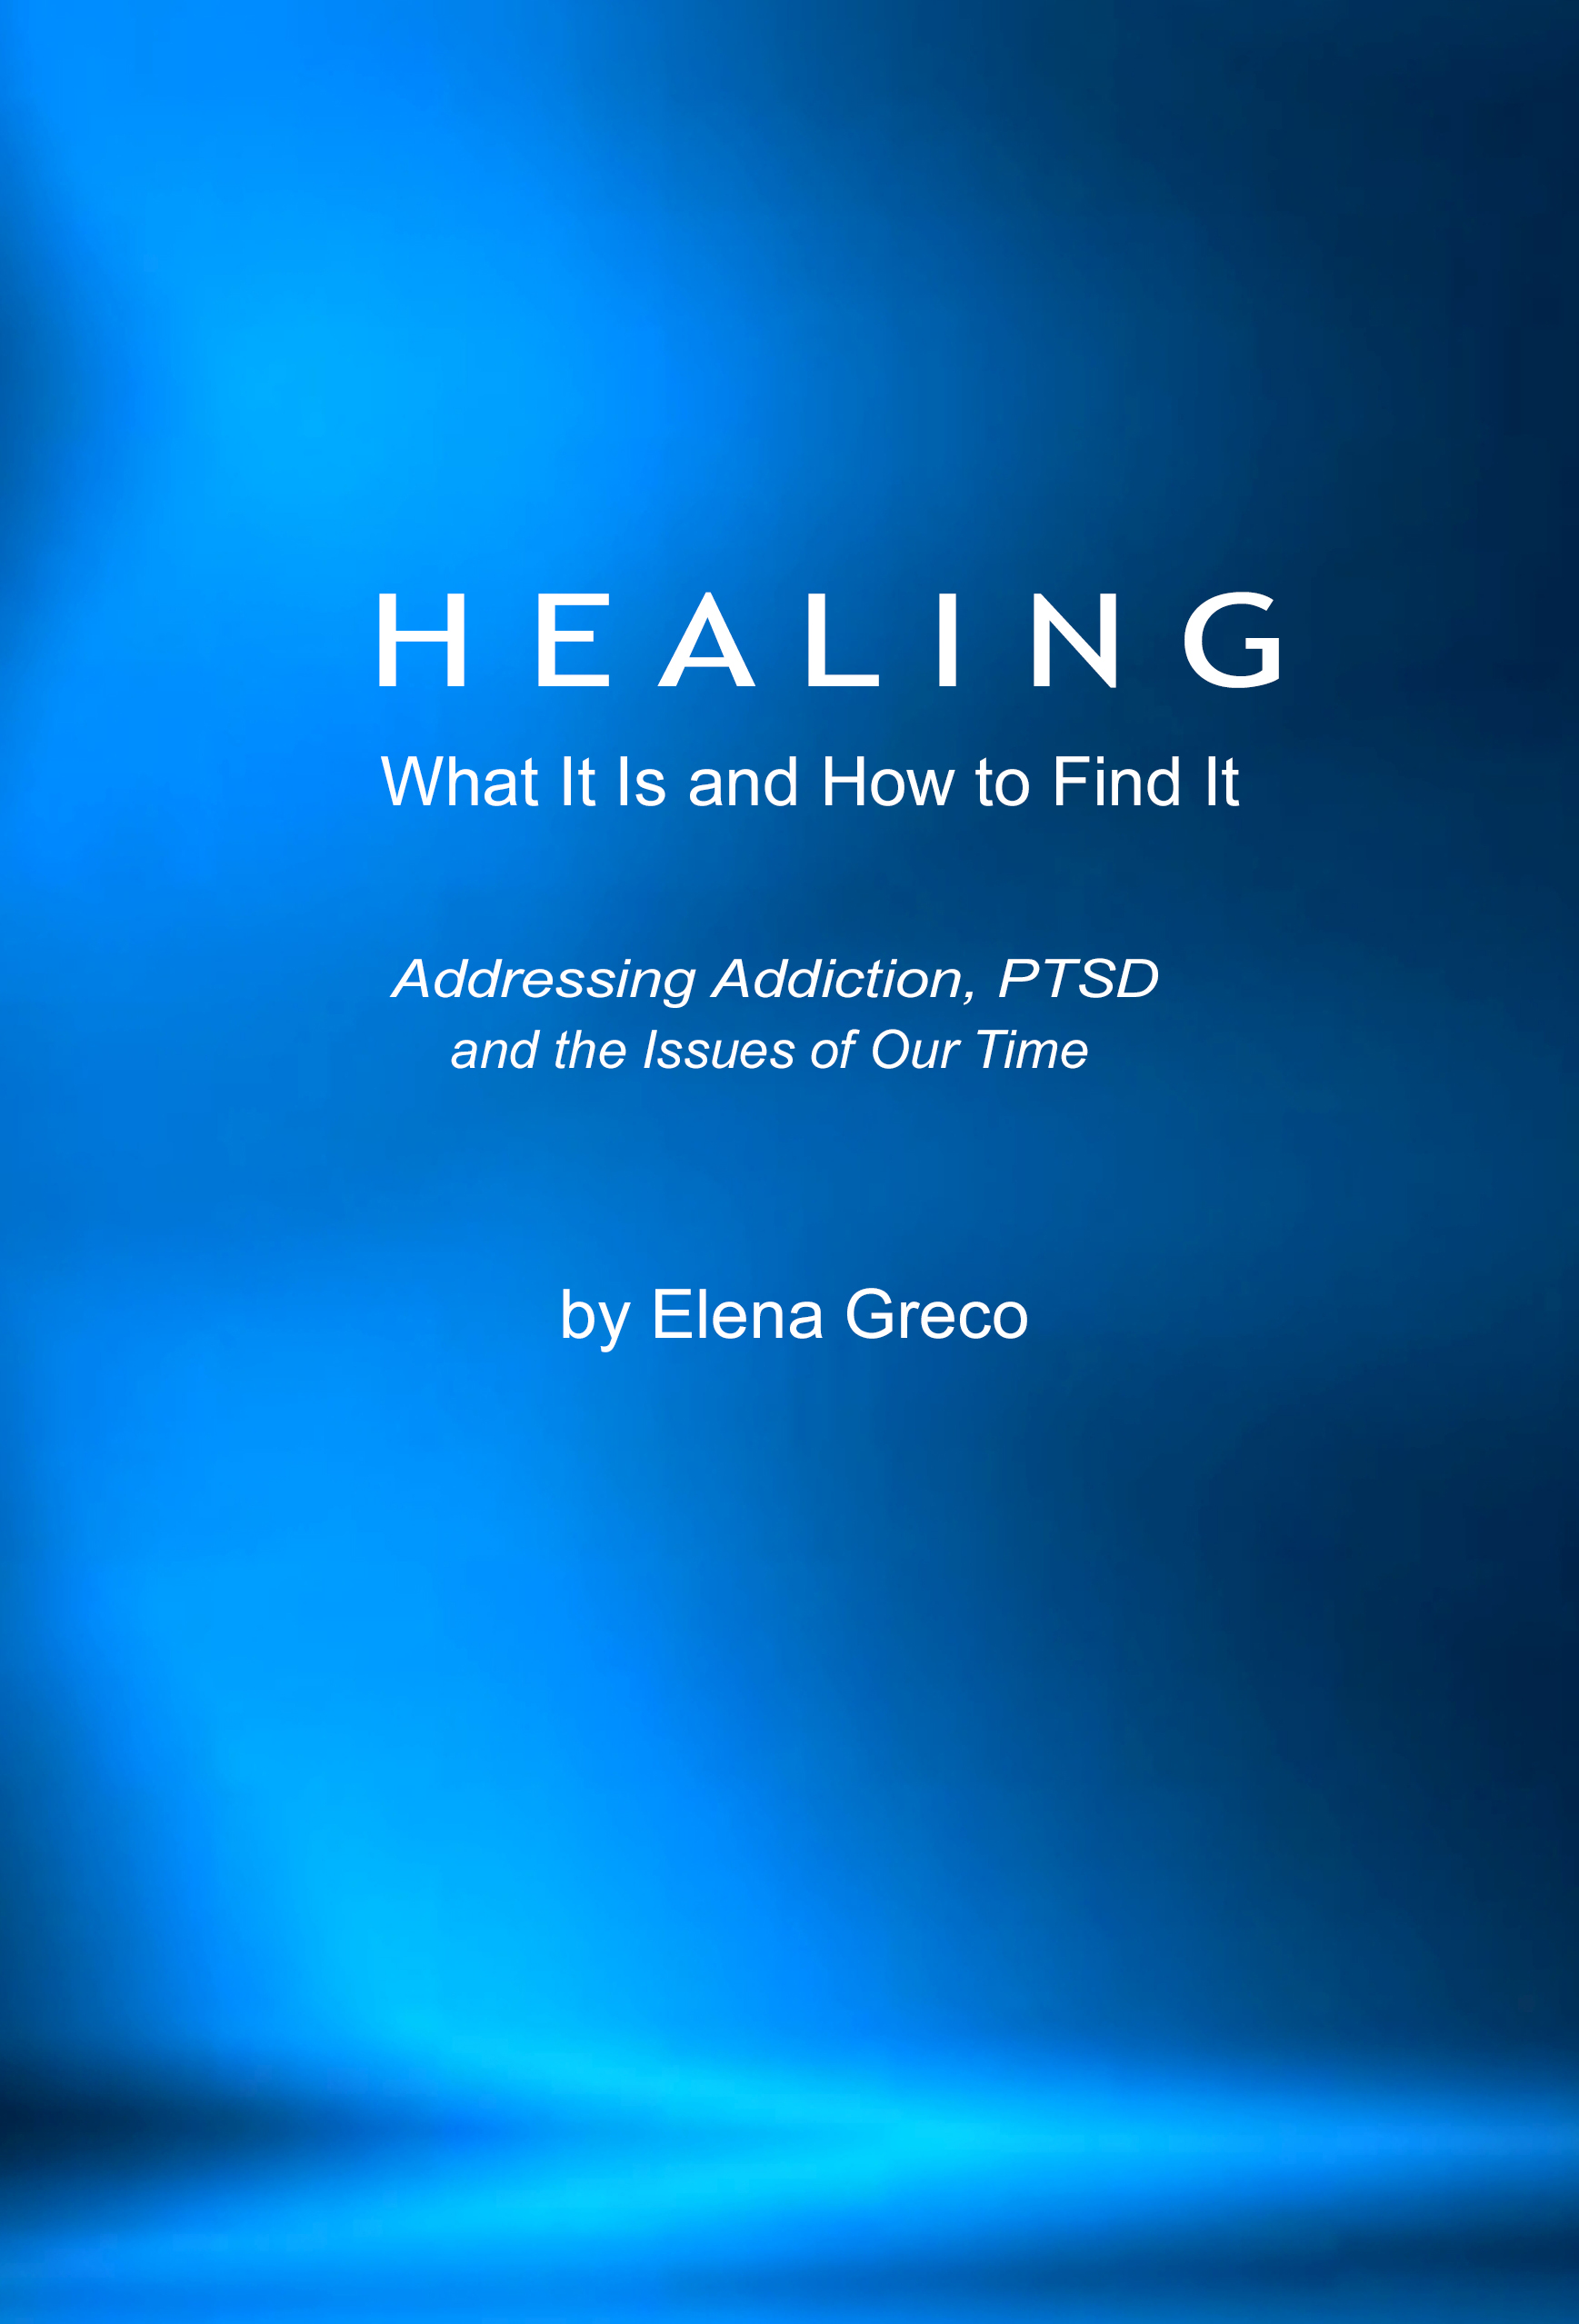 Healing (for book)